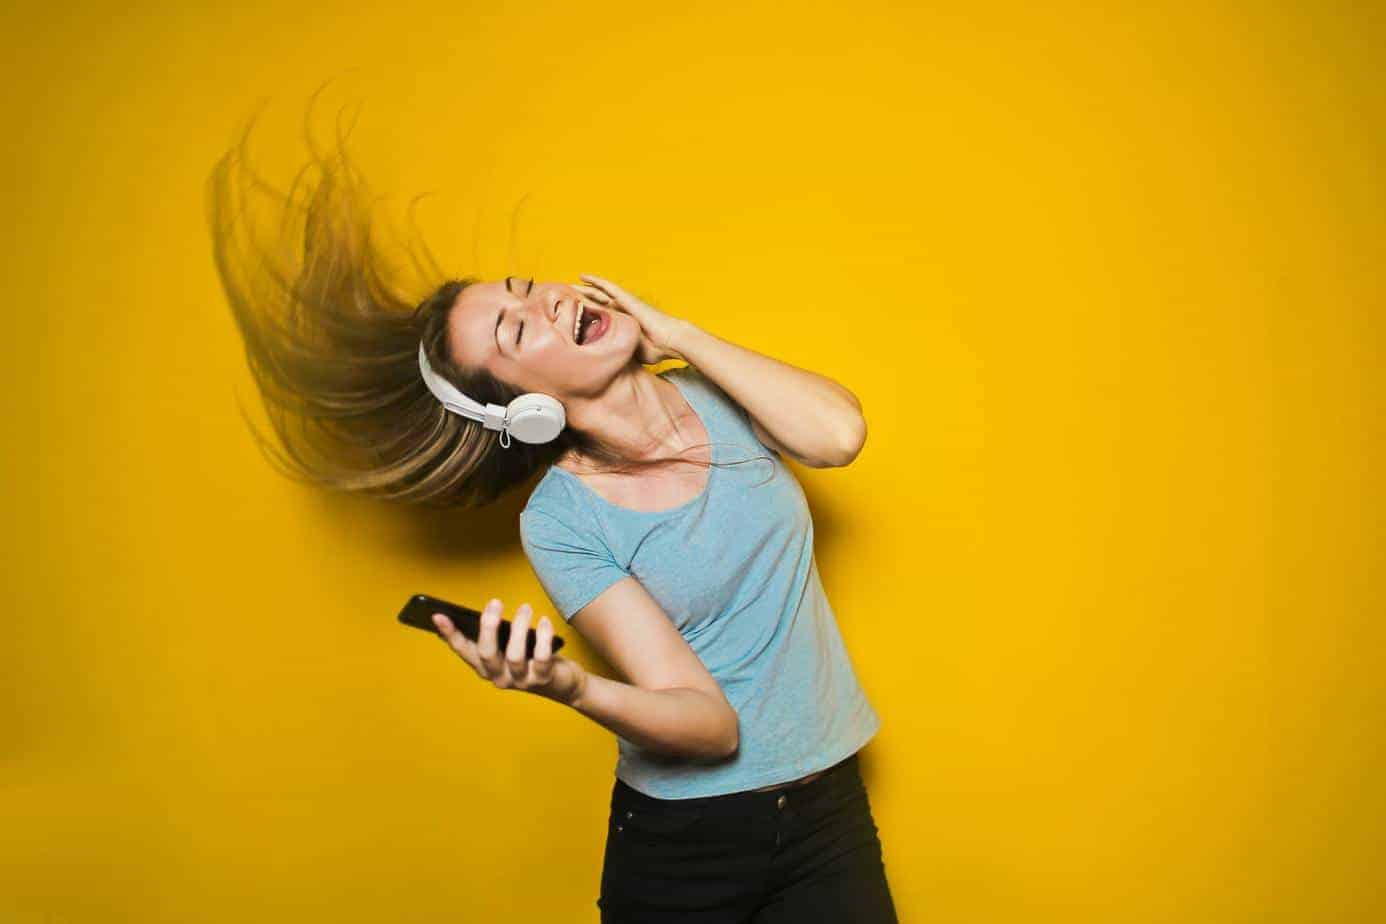 Girl rocking to music